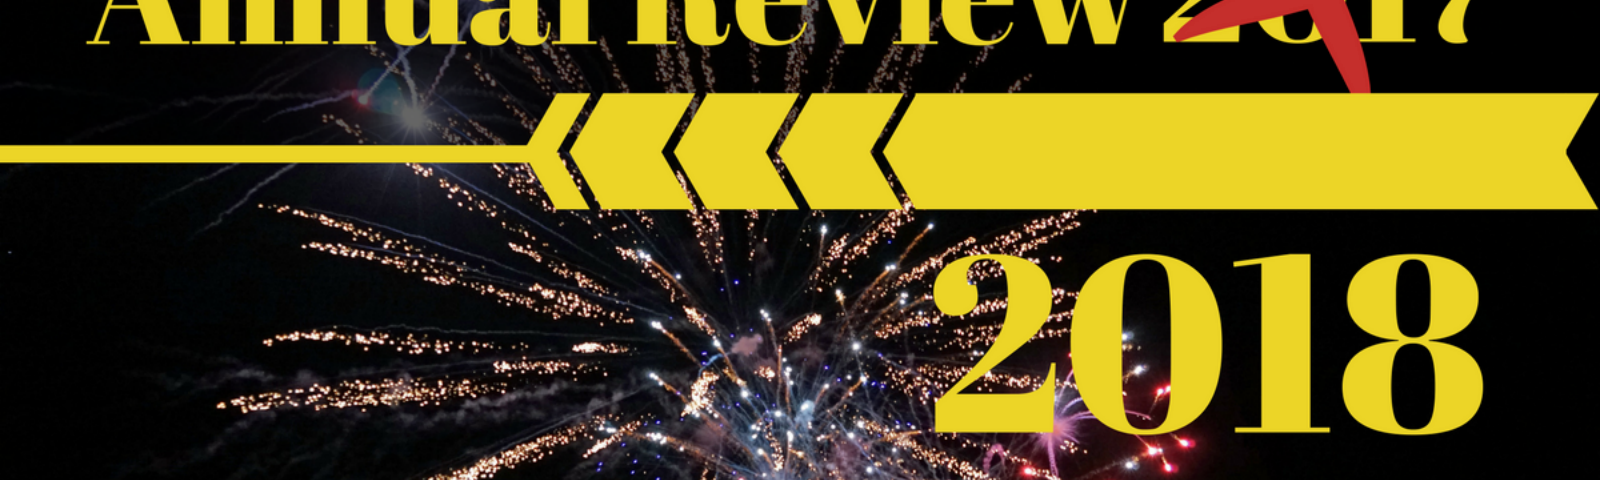 The (first) annual review of 2018 - Looking back at the